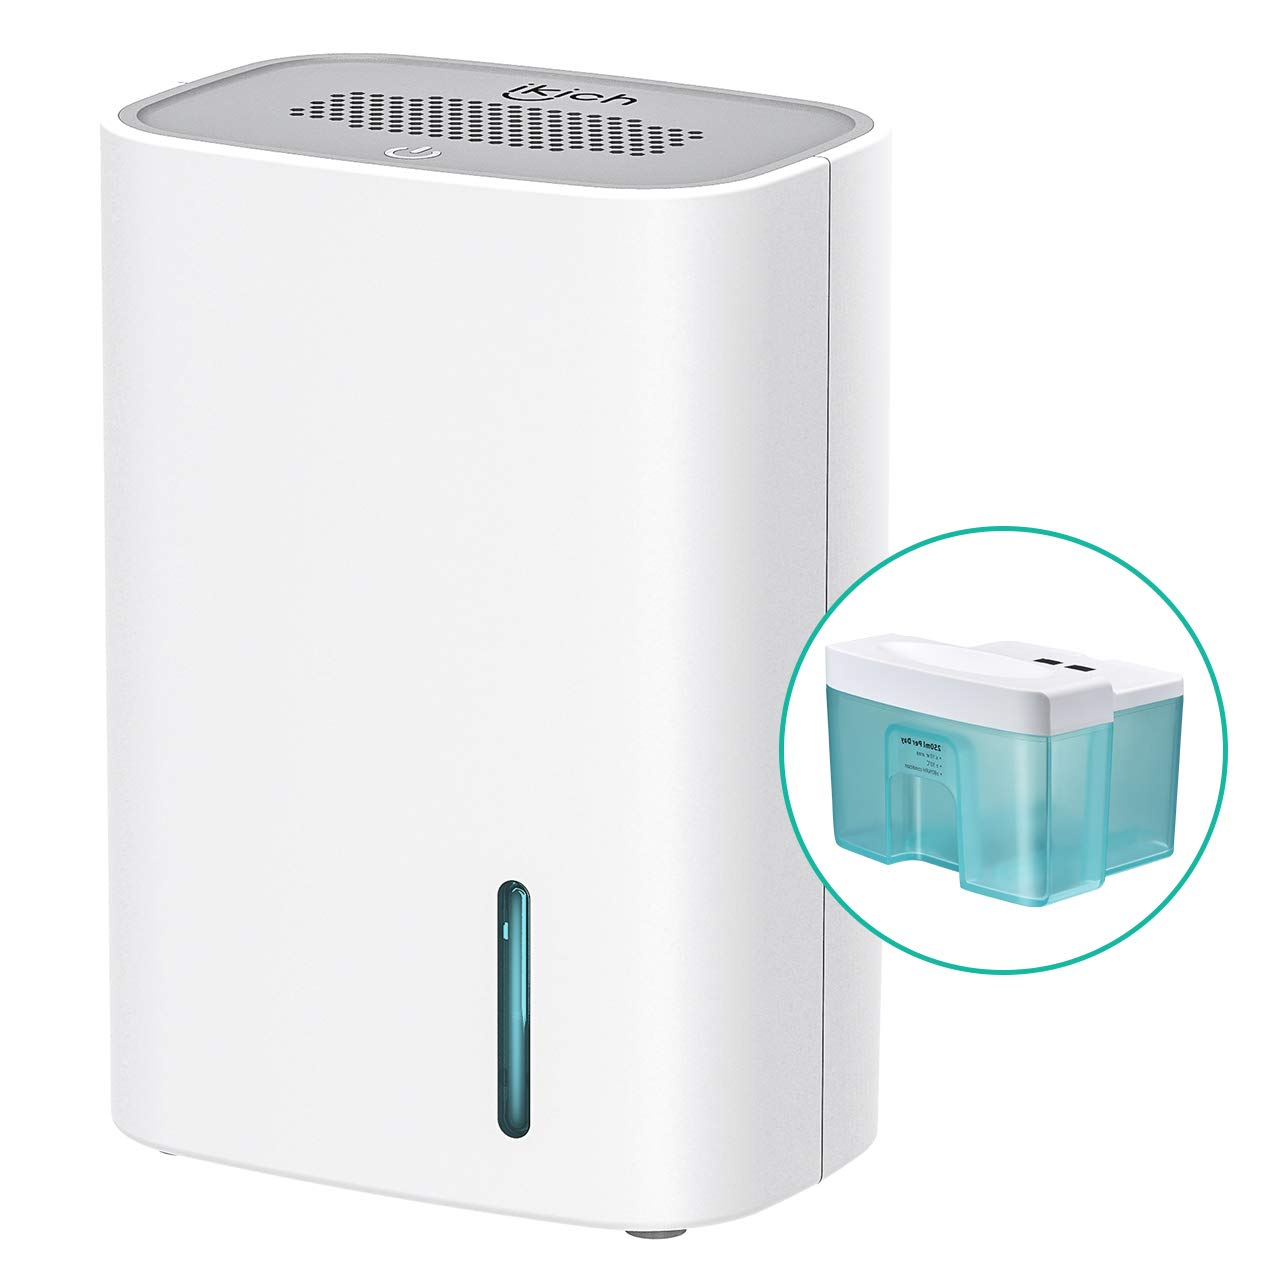 Dehumidifier, iKich 700ml Compact Portable Mini Dehumidifier for Home, with Touch Switch, Silent Mode, Ultra Quiet, Damp, Moulds, Moisture Absorber in Bedroom, Bathroom, Kitchen, Garage, Office